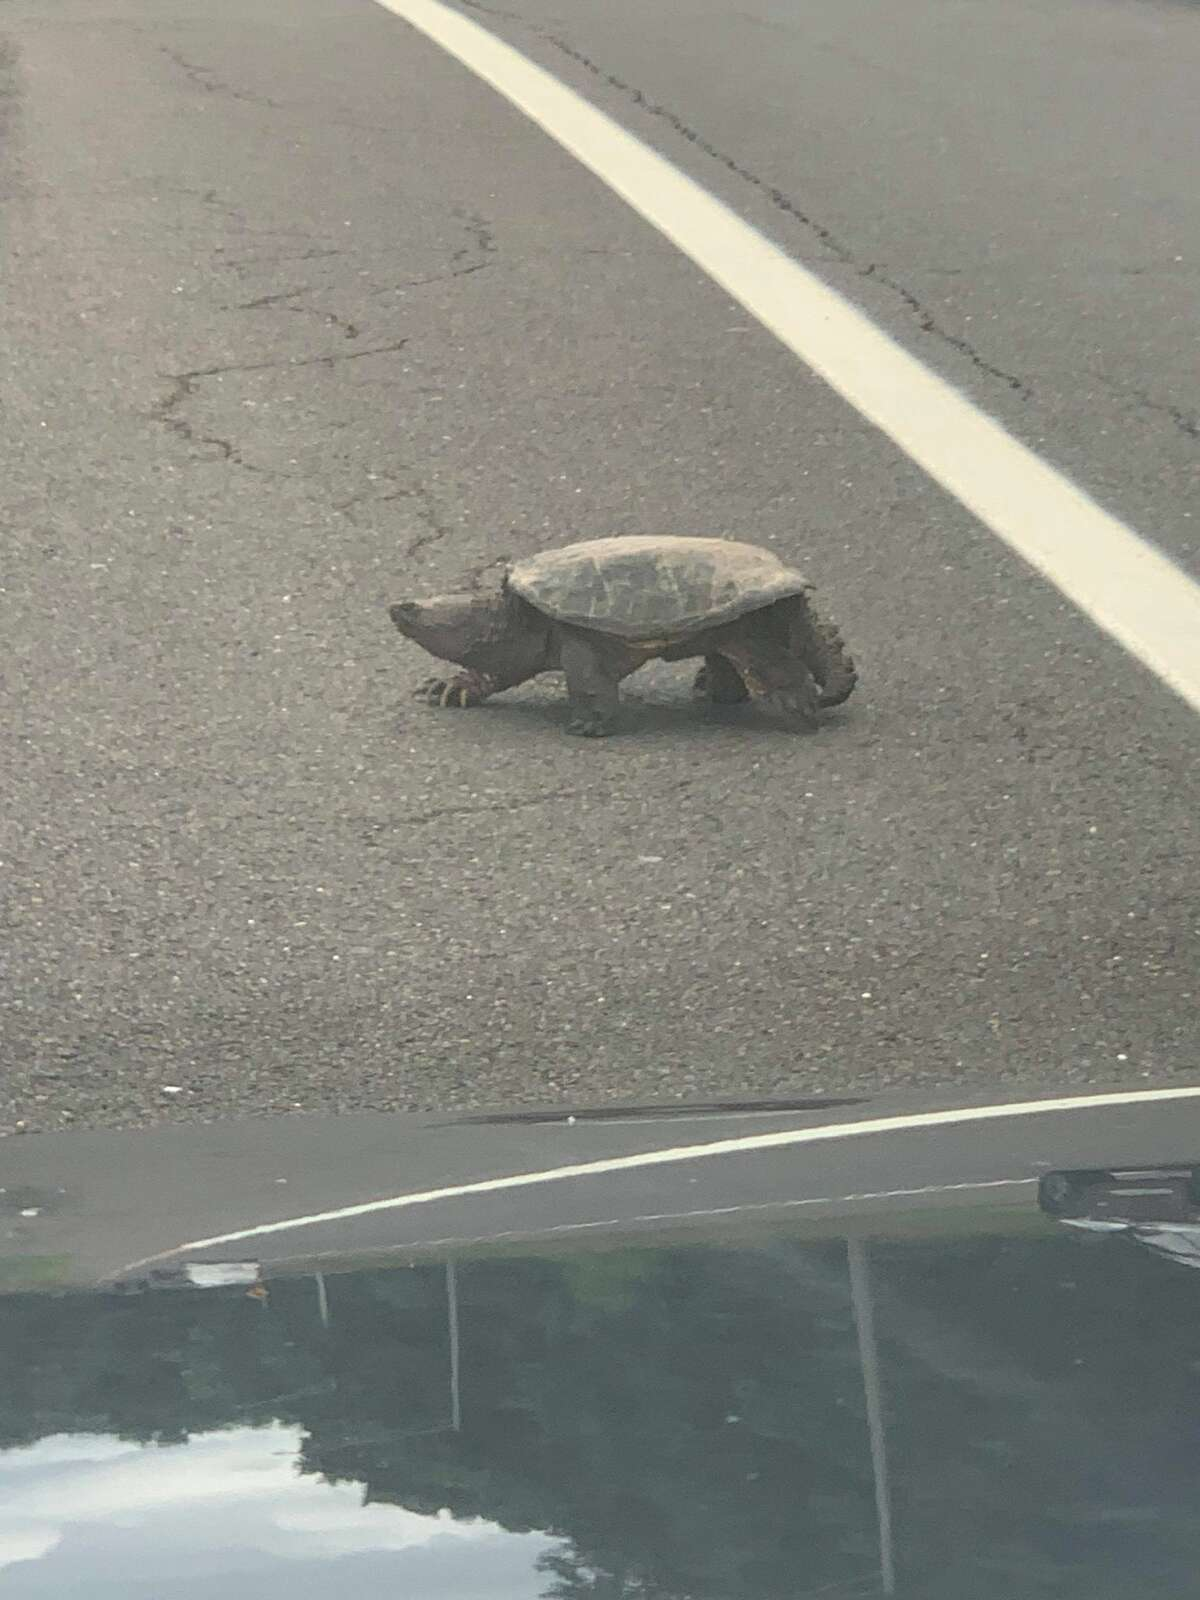 Driver Charles Hill noticed a truck stopped on Wednesday, July 21, 2021 by the 49S exit ramp of the Merritt Parkway with its hazard light on. The truck was stopped to because a snapping turtle was attempting to cross the roadway.